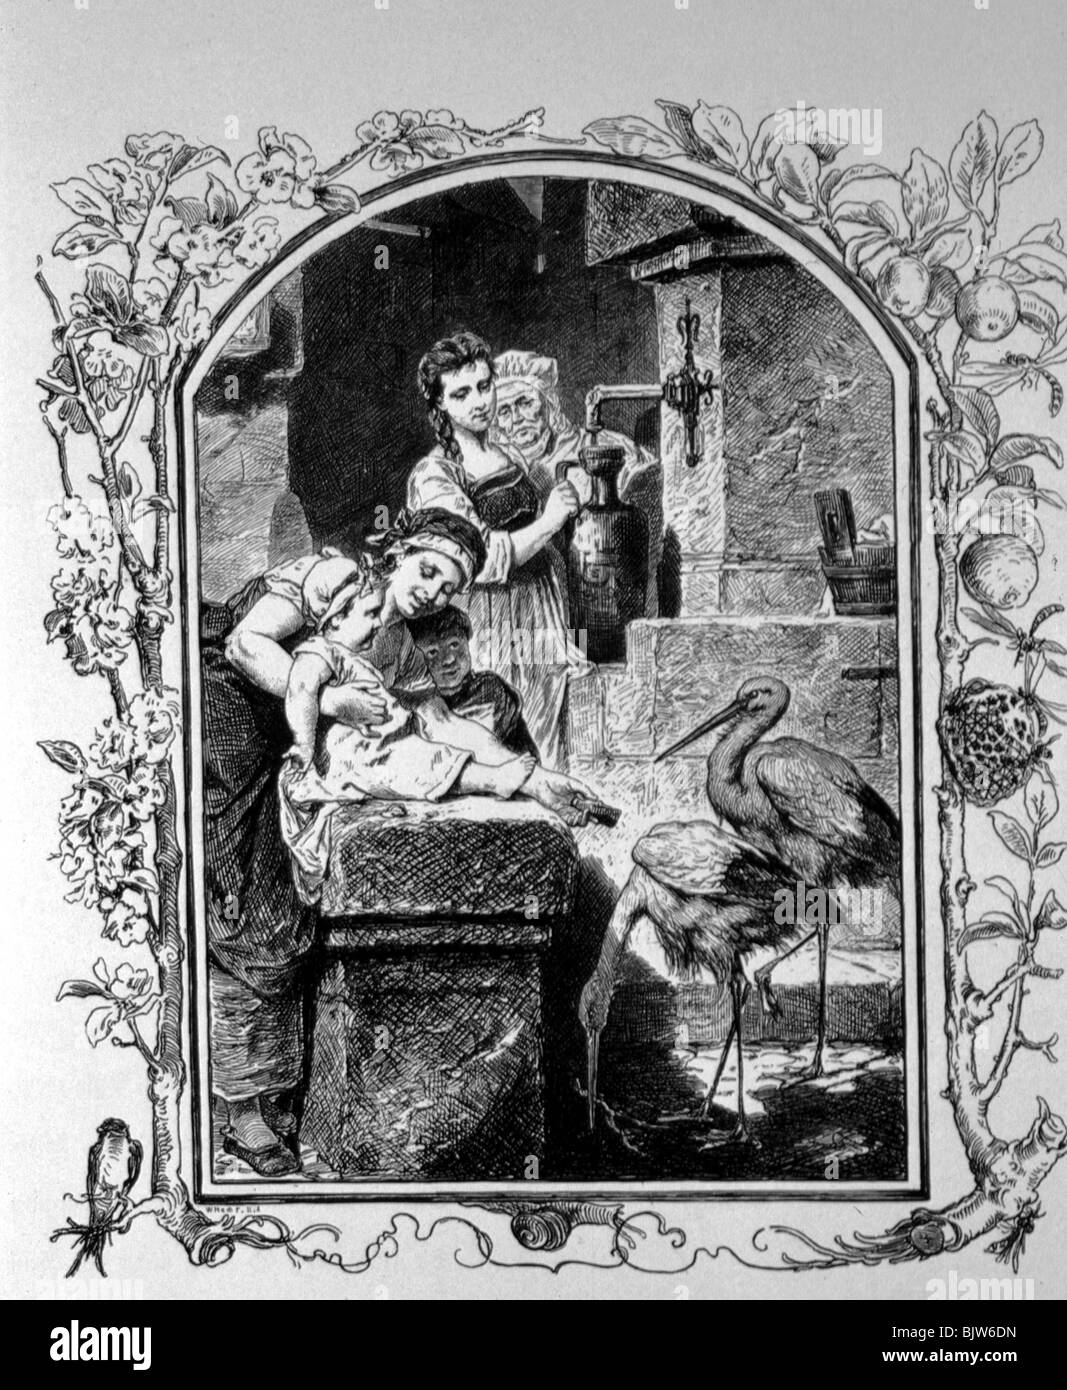 """literature, """"Faust I"""", 17th scene """"At the well"""", Gretchen and Lieschen at the well, wood engraving by W. Hecht, Stock Photo"""